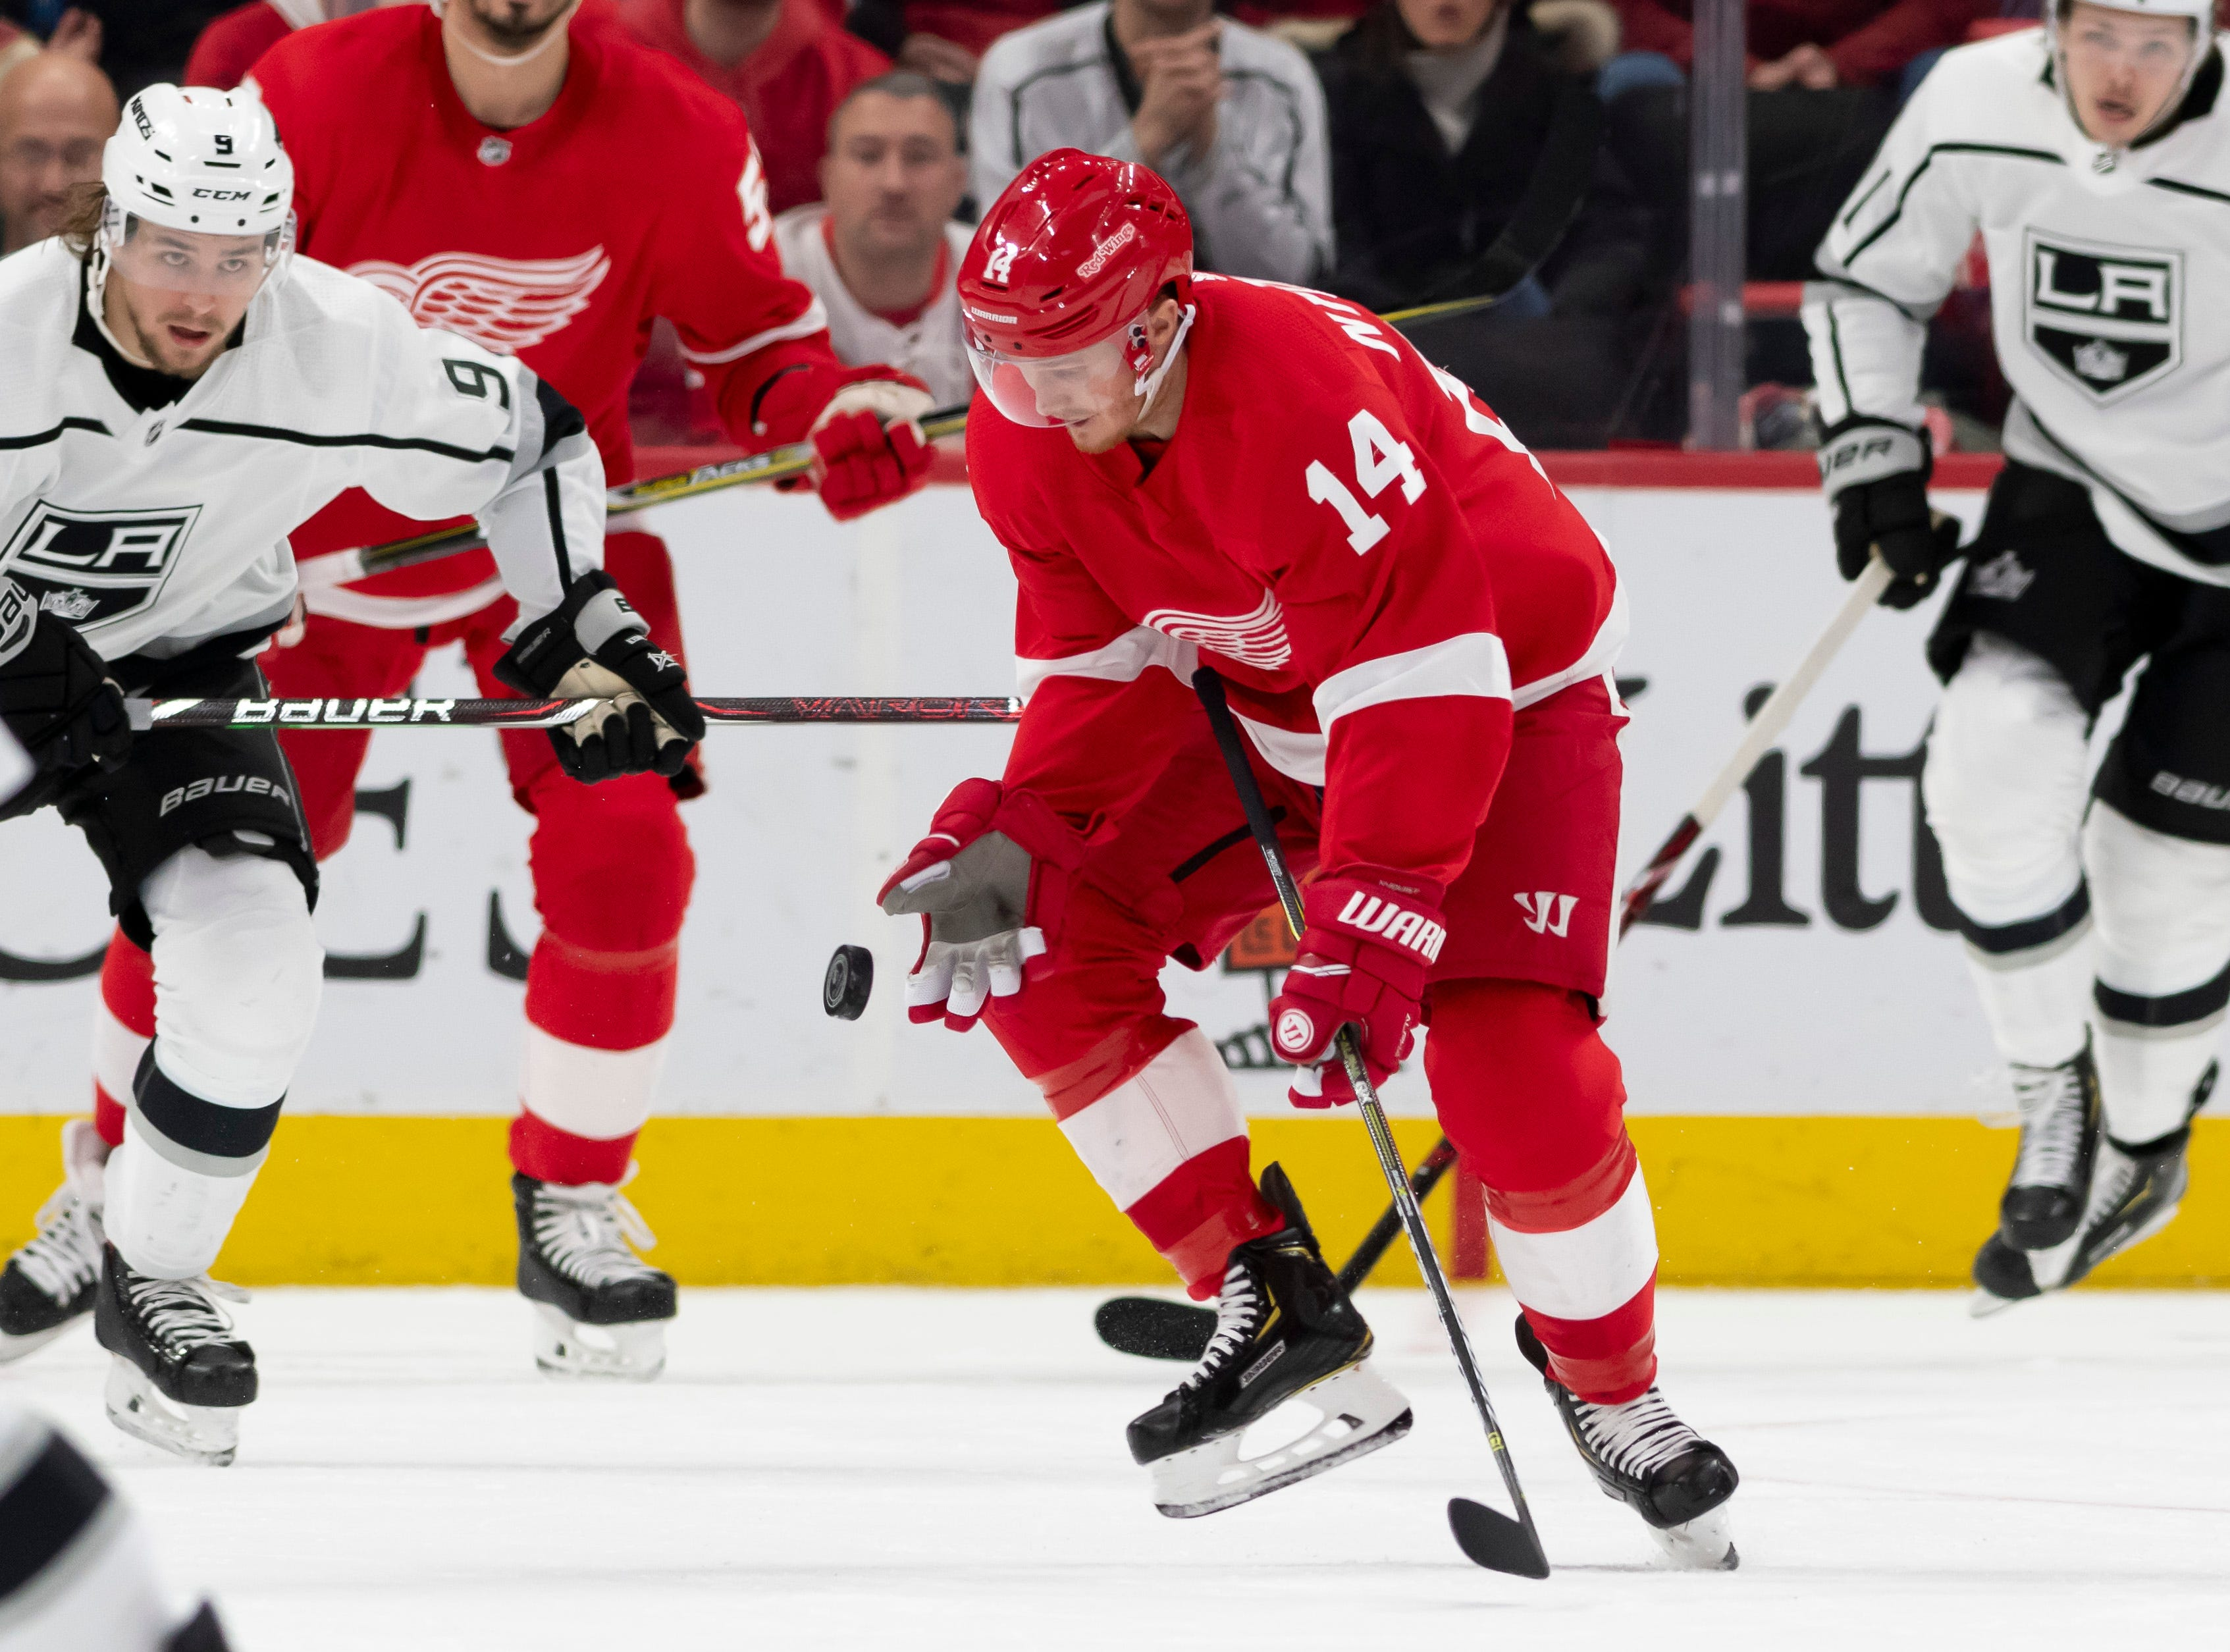 Detroit center Gustav Nyquist tries to stop a bouncing puck in the third period.